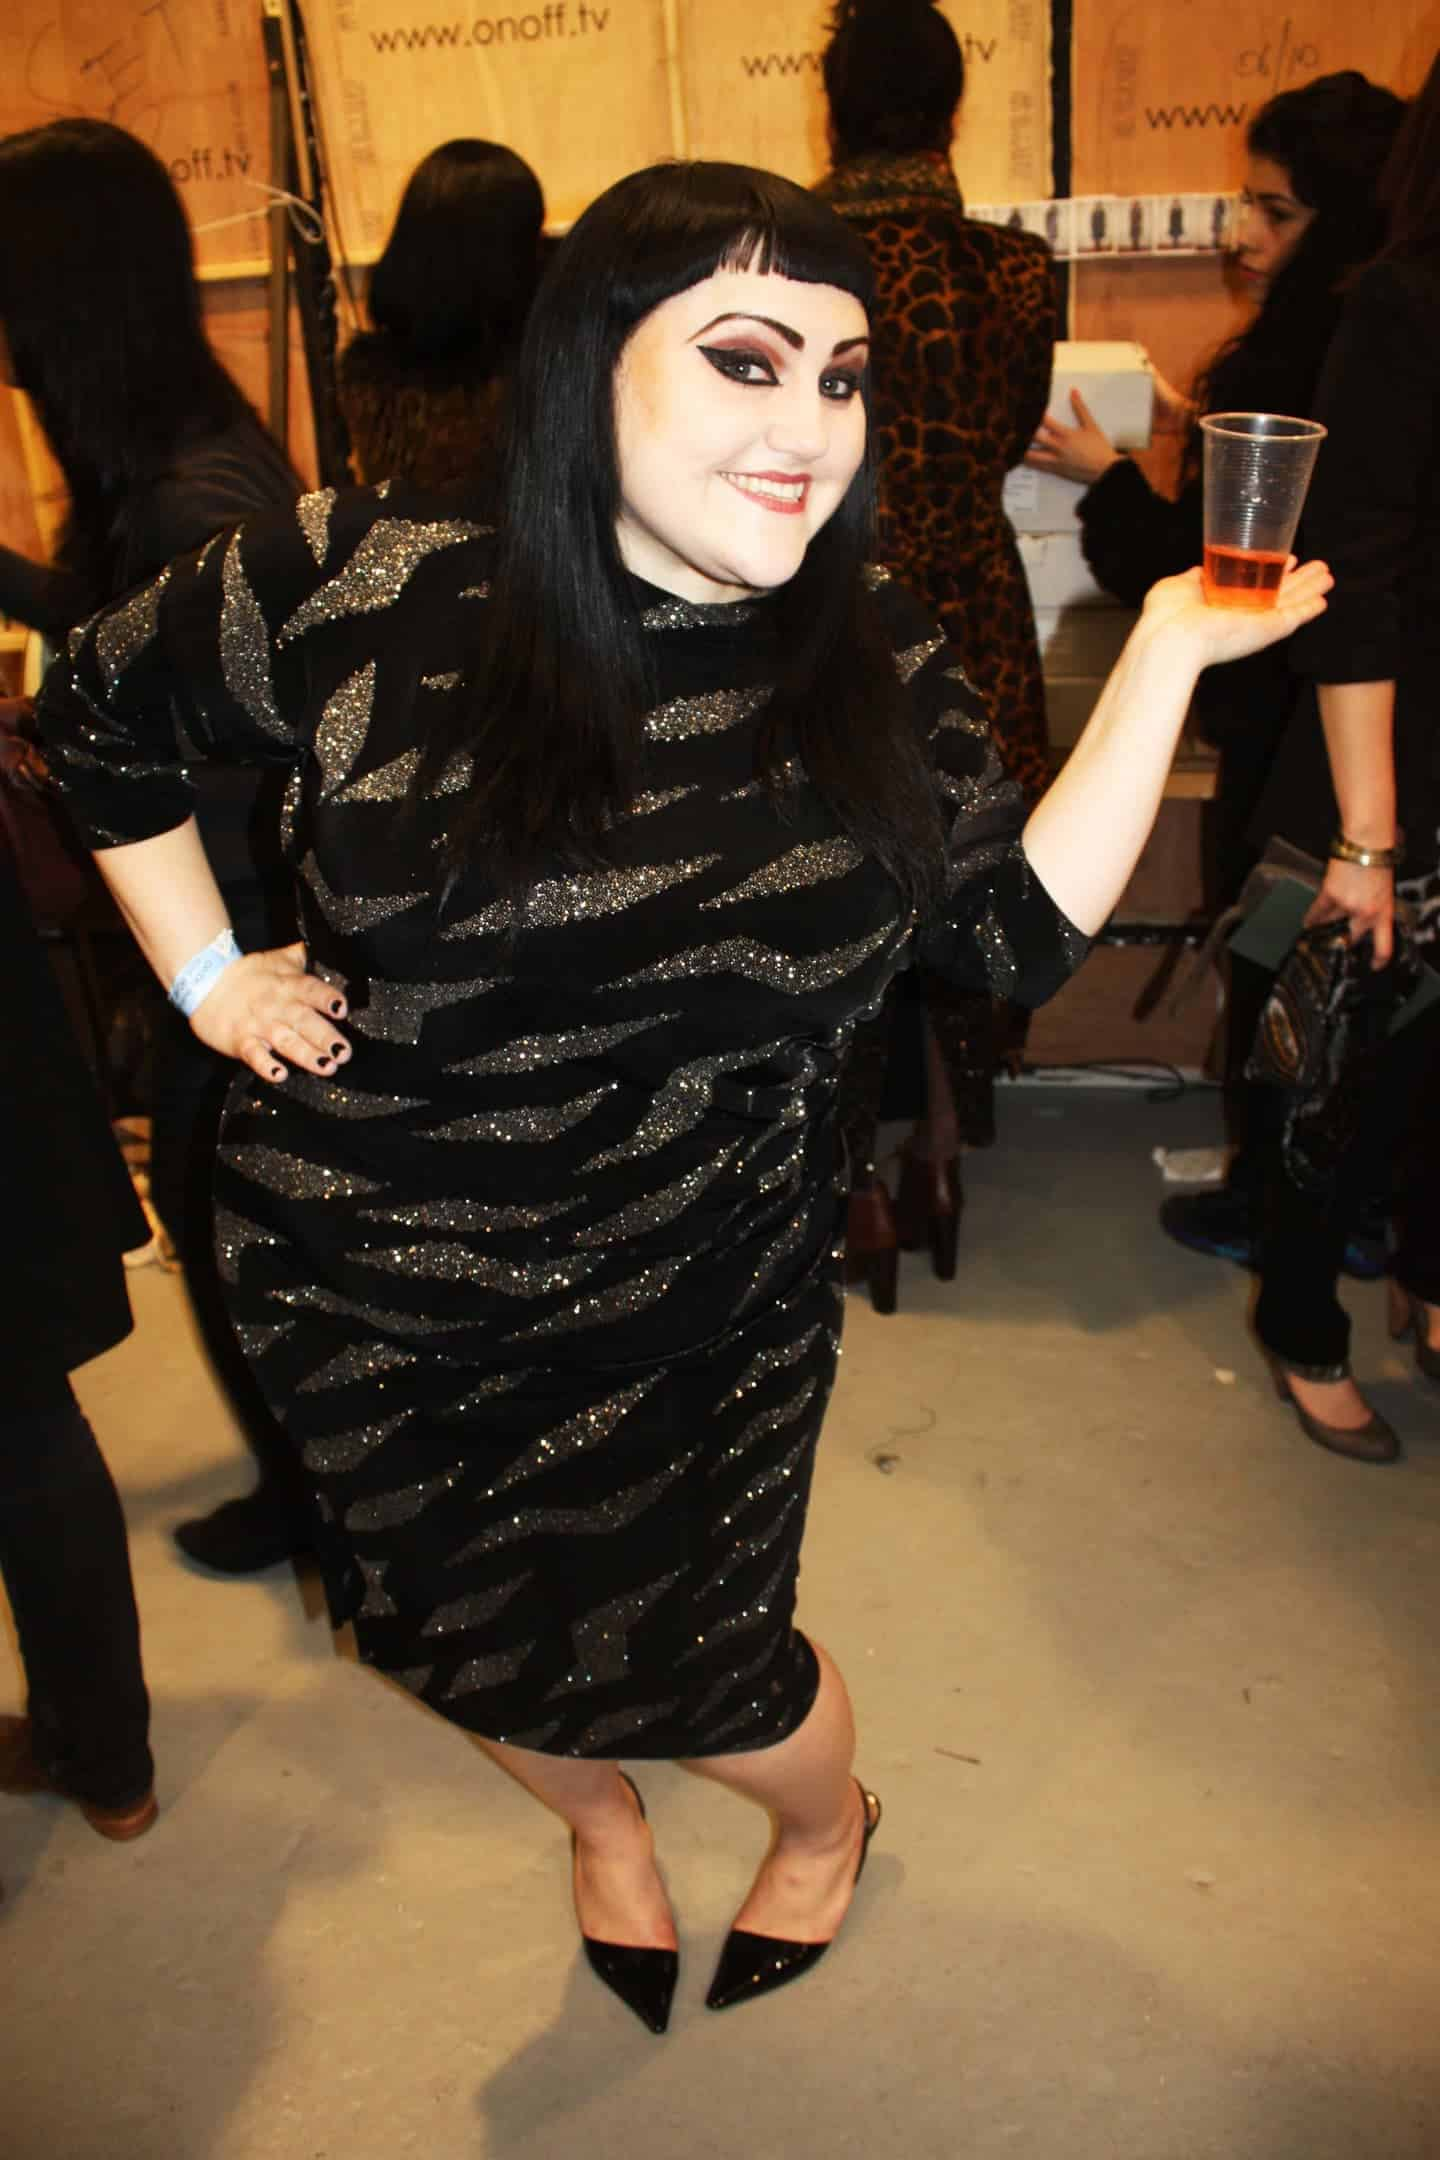 Celebrity_-_Beth_Ditto_-_Julian_J_Smith_19-2-11_